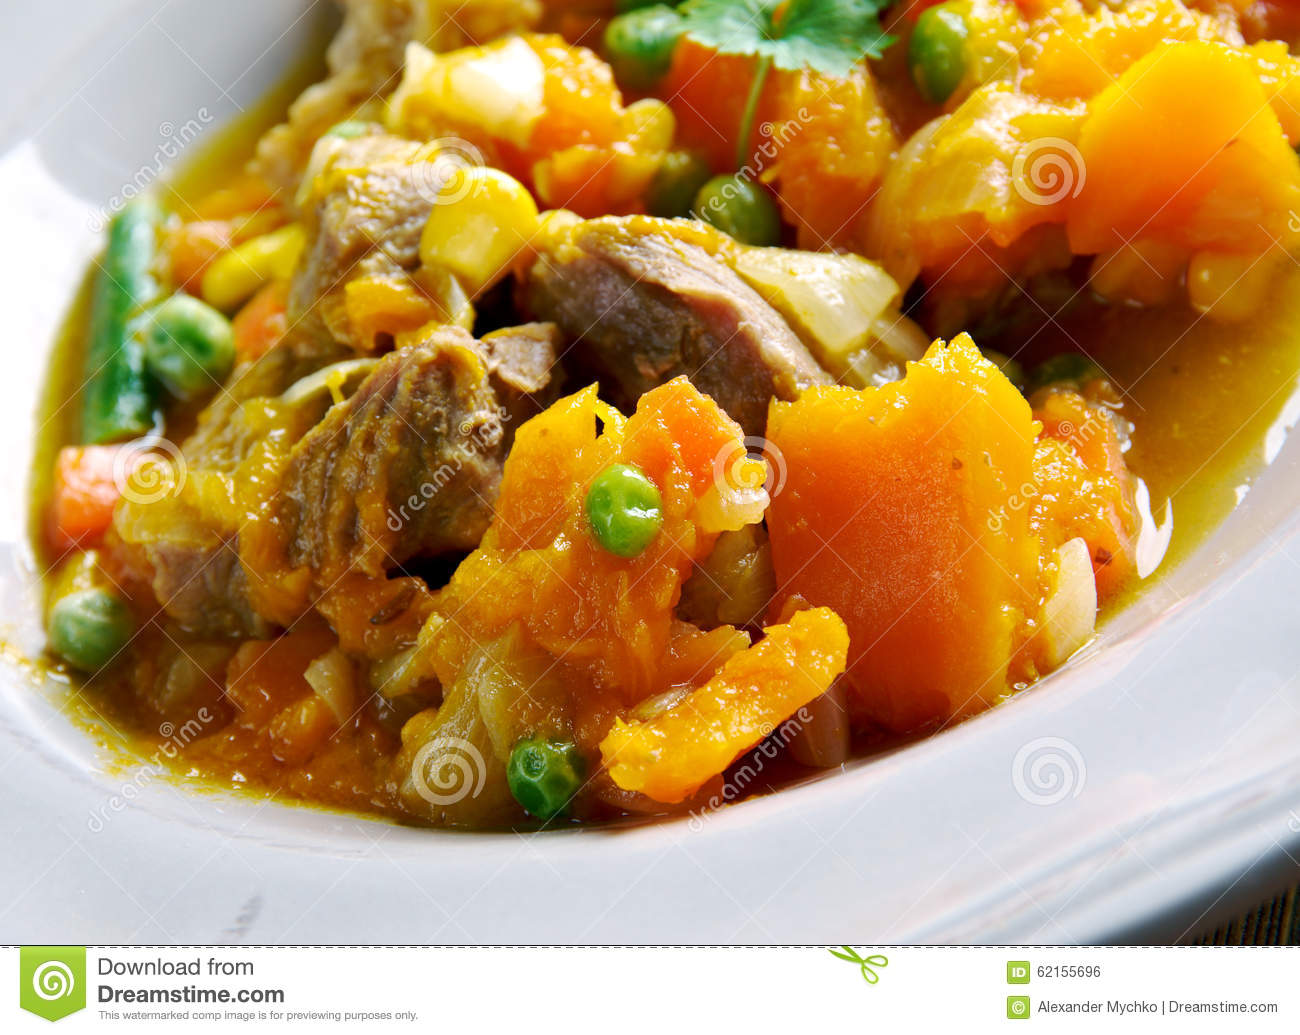 Pumpkin Pork Stew Stock Photo - Image: 62155696